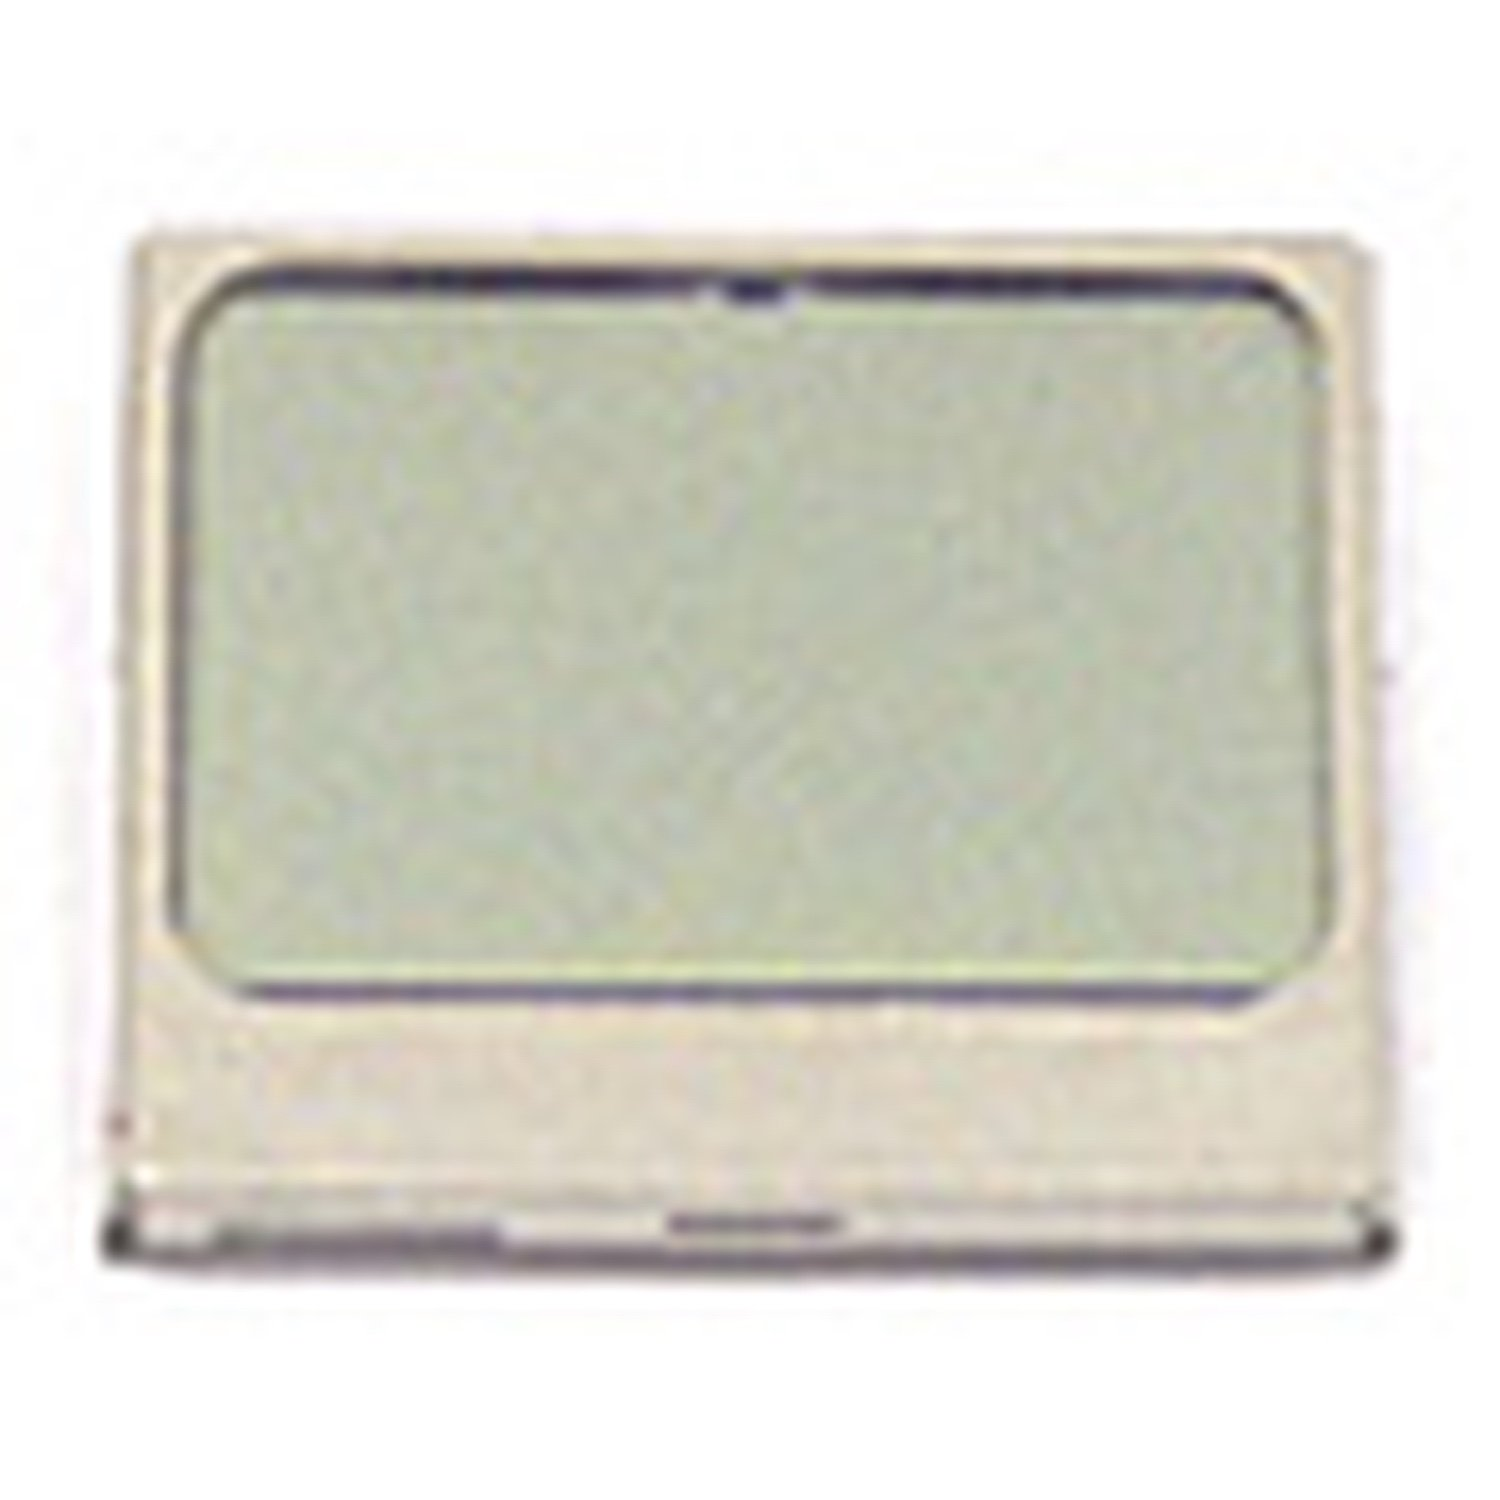 LCD Display Nokia 5110/6110/6150 With Frame And Rubber Cond